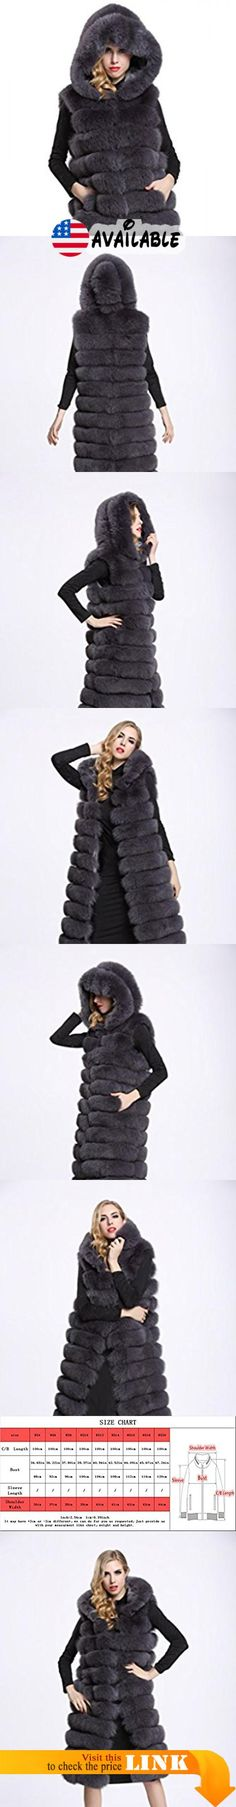 "B01JE7470S : TOPFUR Women's Grey Fox Fur Vest Whole Skin Long Fox Fur Hooded Vest(M). Made from high quality Genuine whole fox fur external with soft and elastic Polyester Lining which feels cozy on the skin and comfortable to wear. Available sizes and colors of stylish fur vest excellently fit well with your demand. Length:39.37""(100cm). Elegant Hat with handsome slant pockets design look stereoscopic and gorgeous as the cool model when wearing this practical and fashion"